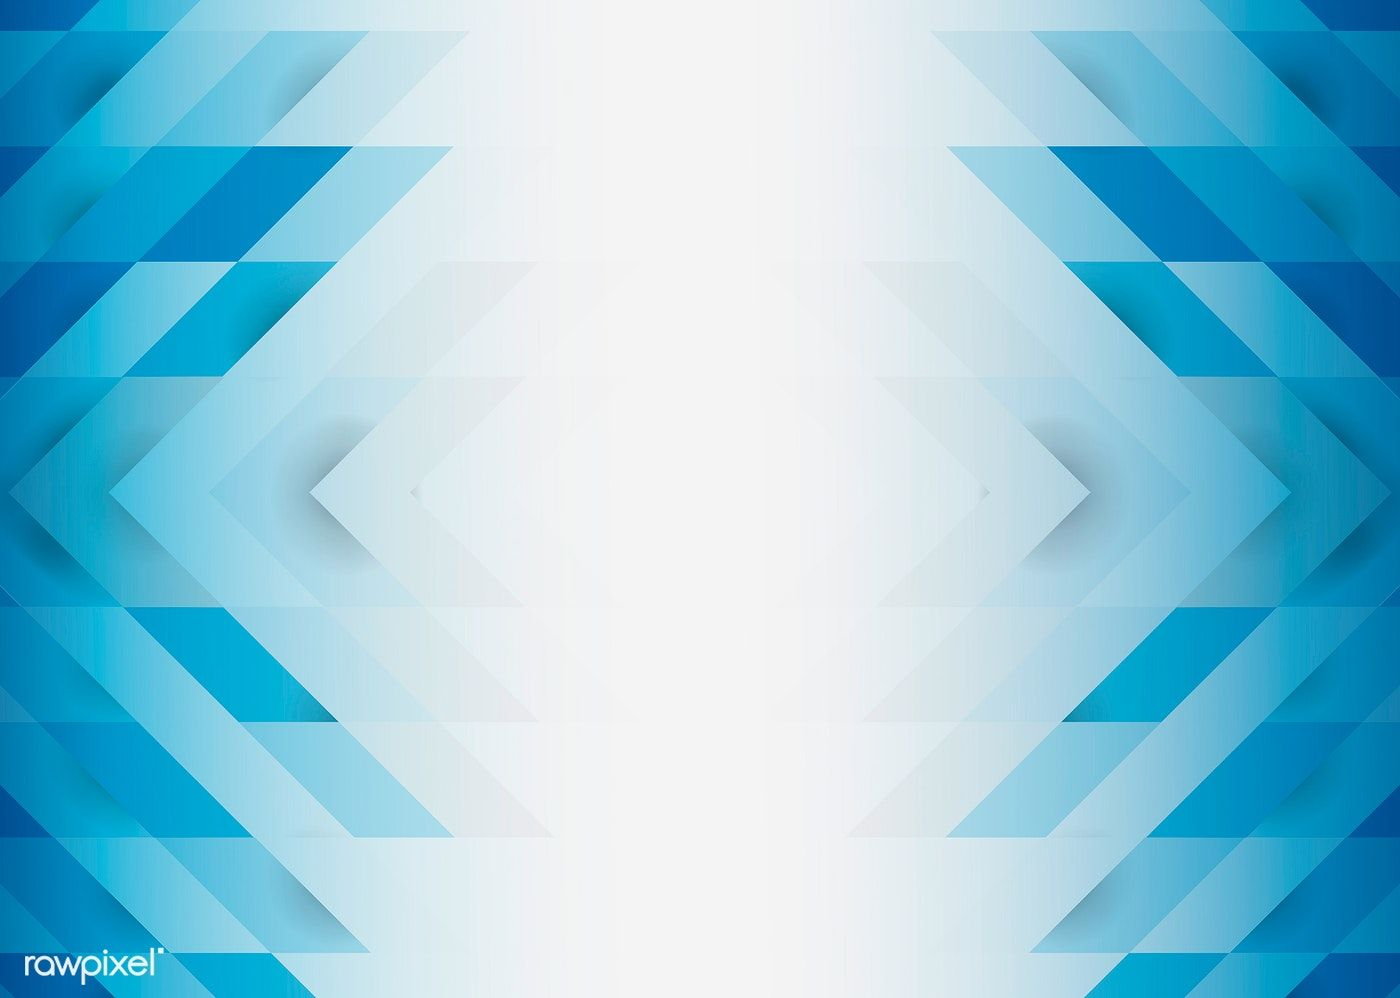 clipart free Background design free image. Vector blue modern